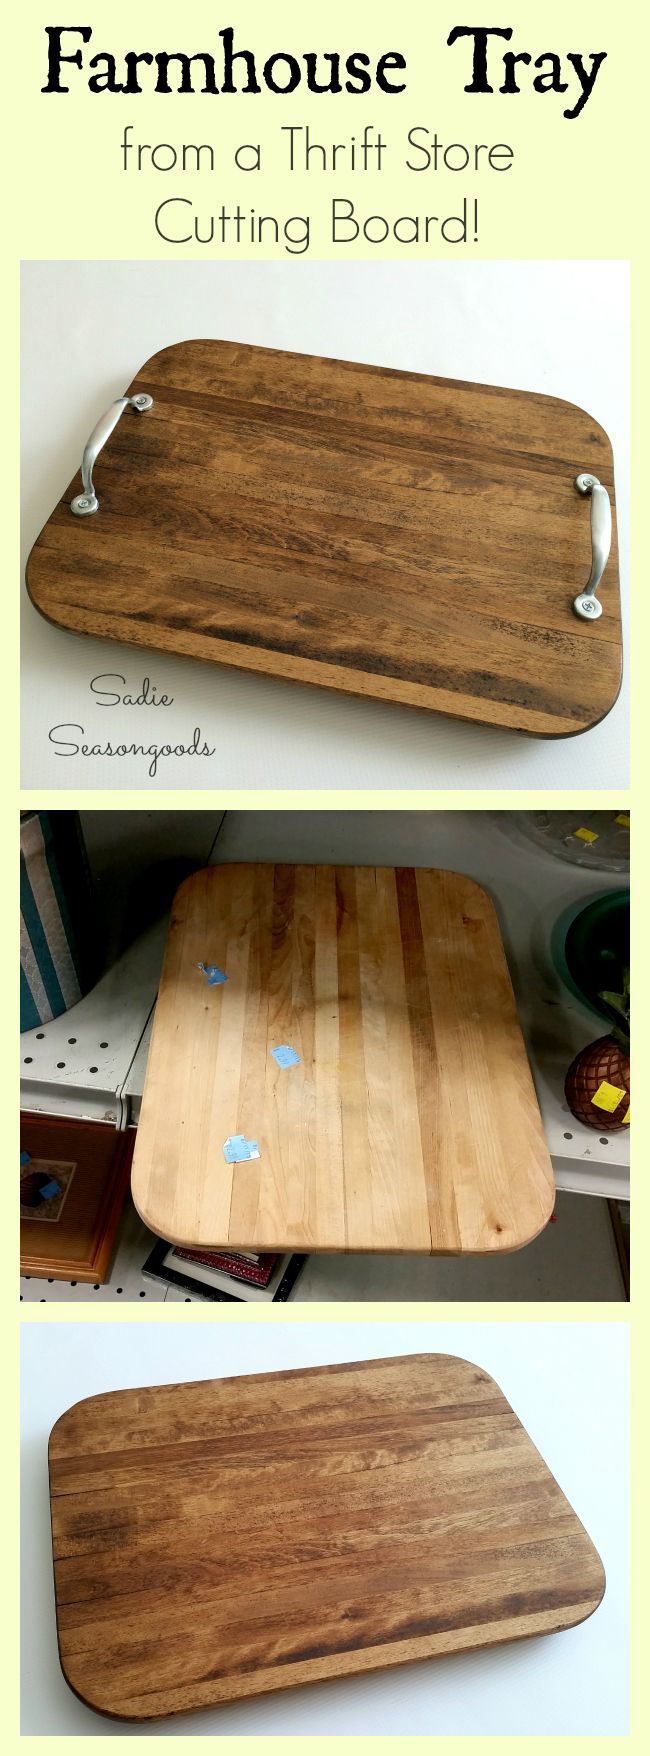 Just In Time For Entertaining Guests This Holiday Season...a DIY Tray  Upcycled From A Thrift Store Cutting Board! A Little TLC Goes A Long Way  With An Old ...